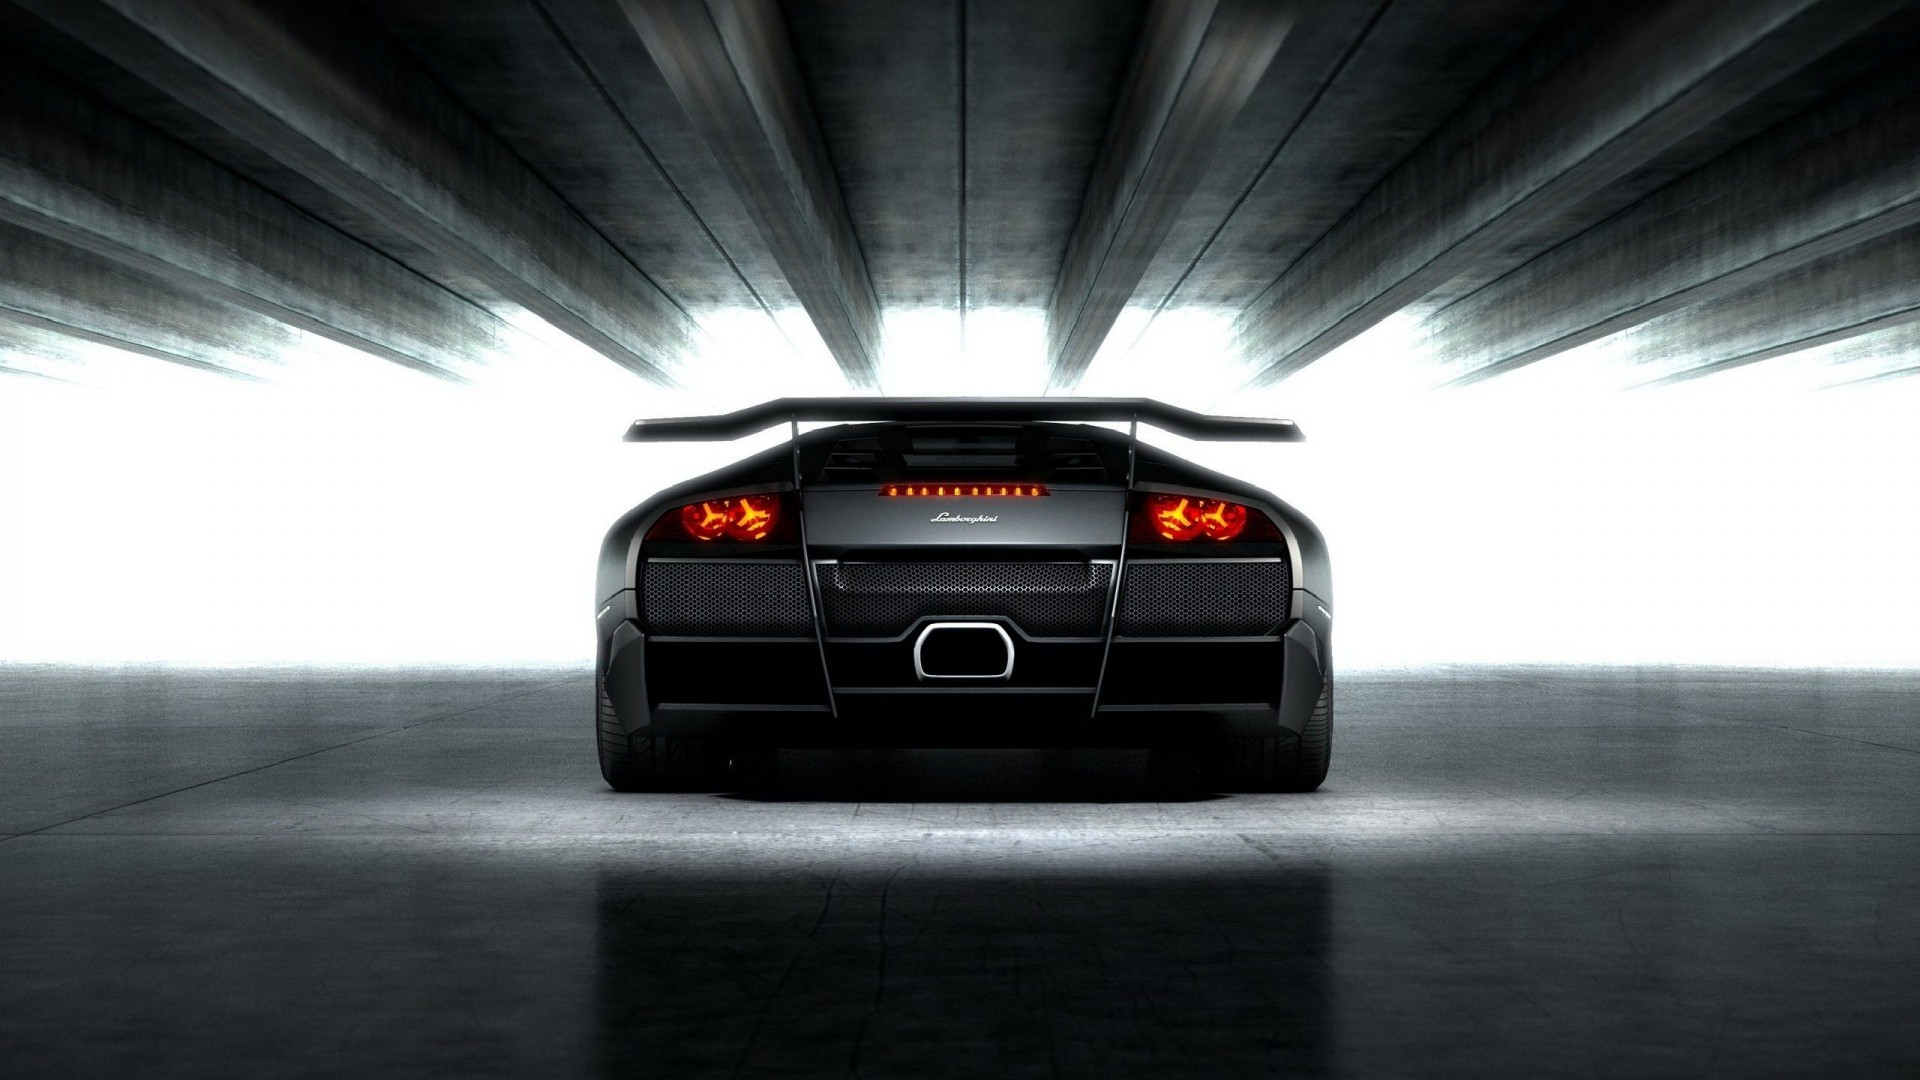 Lamborghini Murcielago Lp670 4 Sv Black Supercar Car